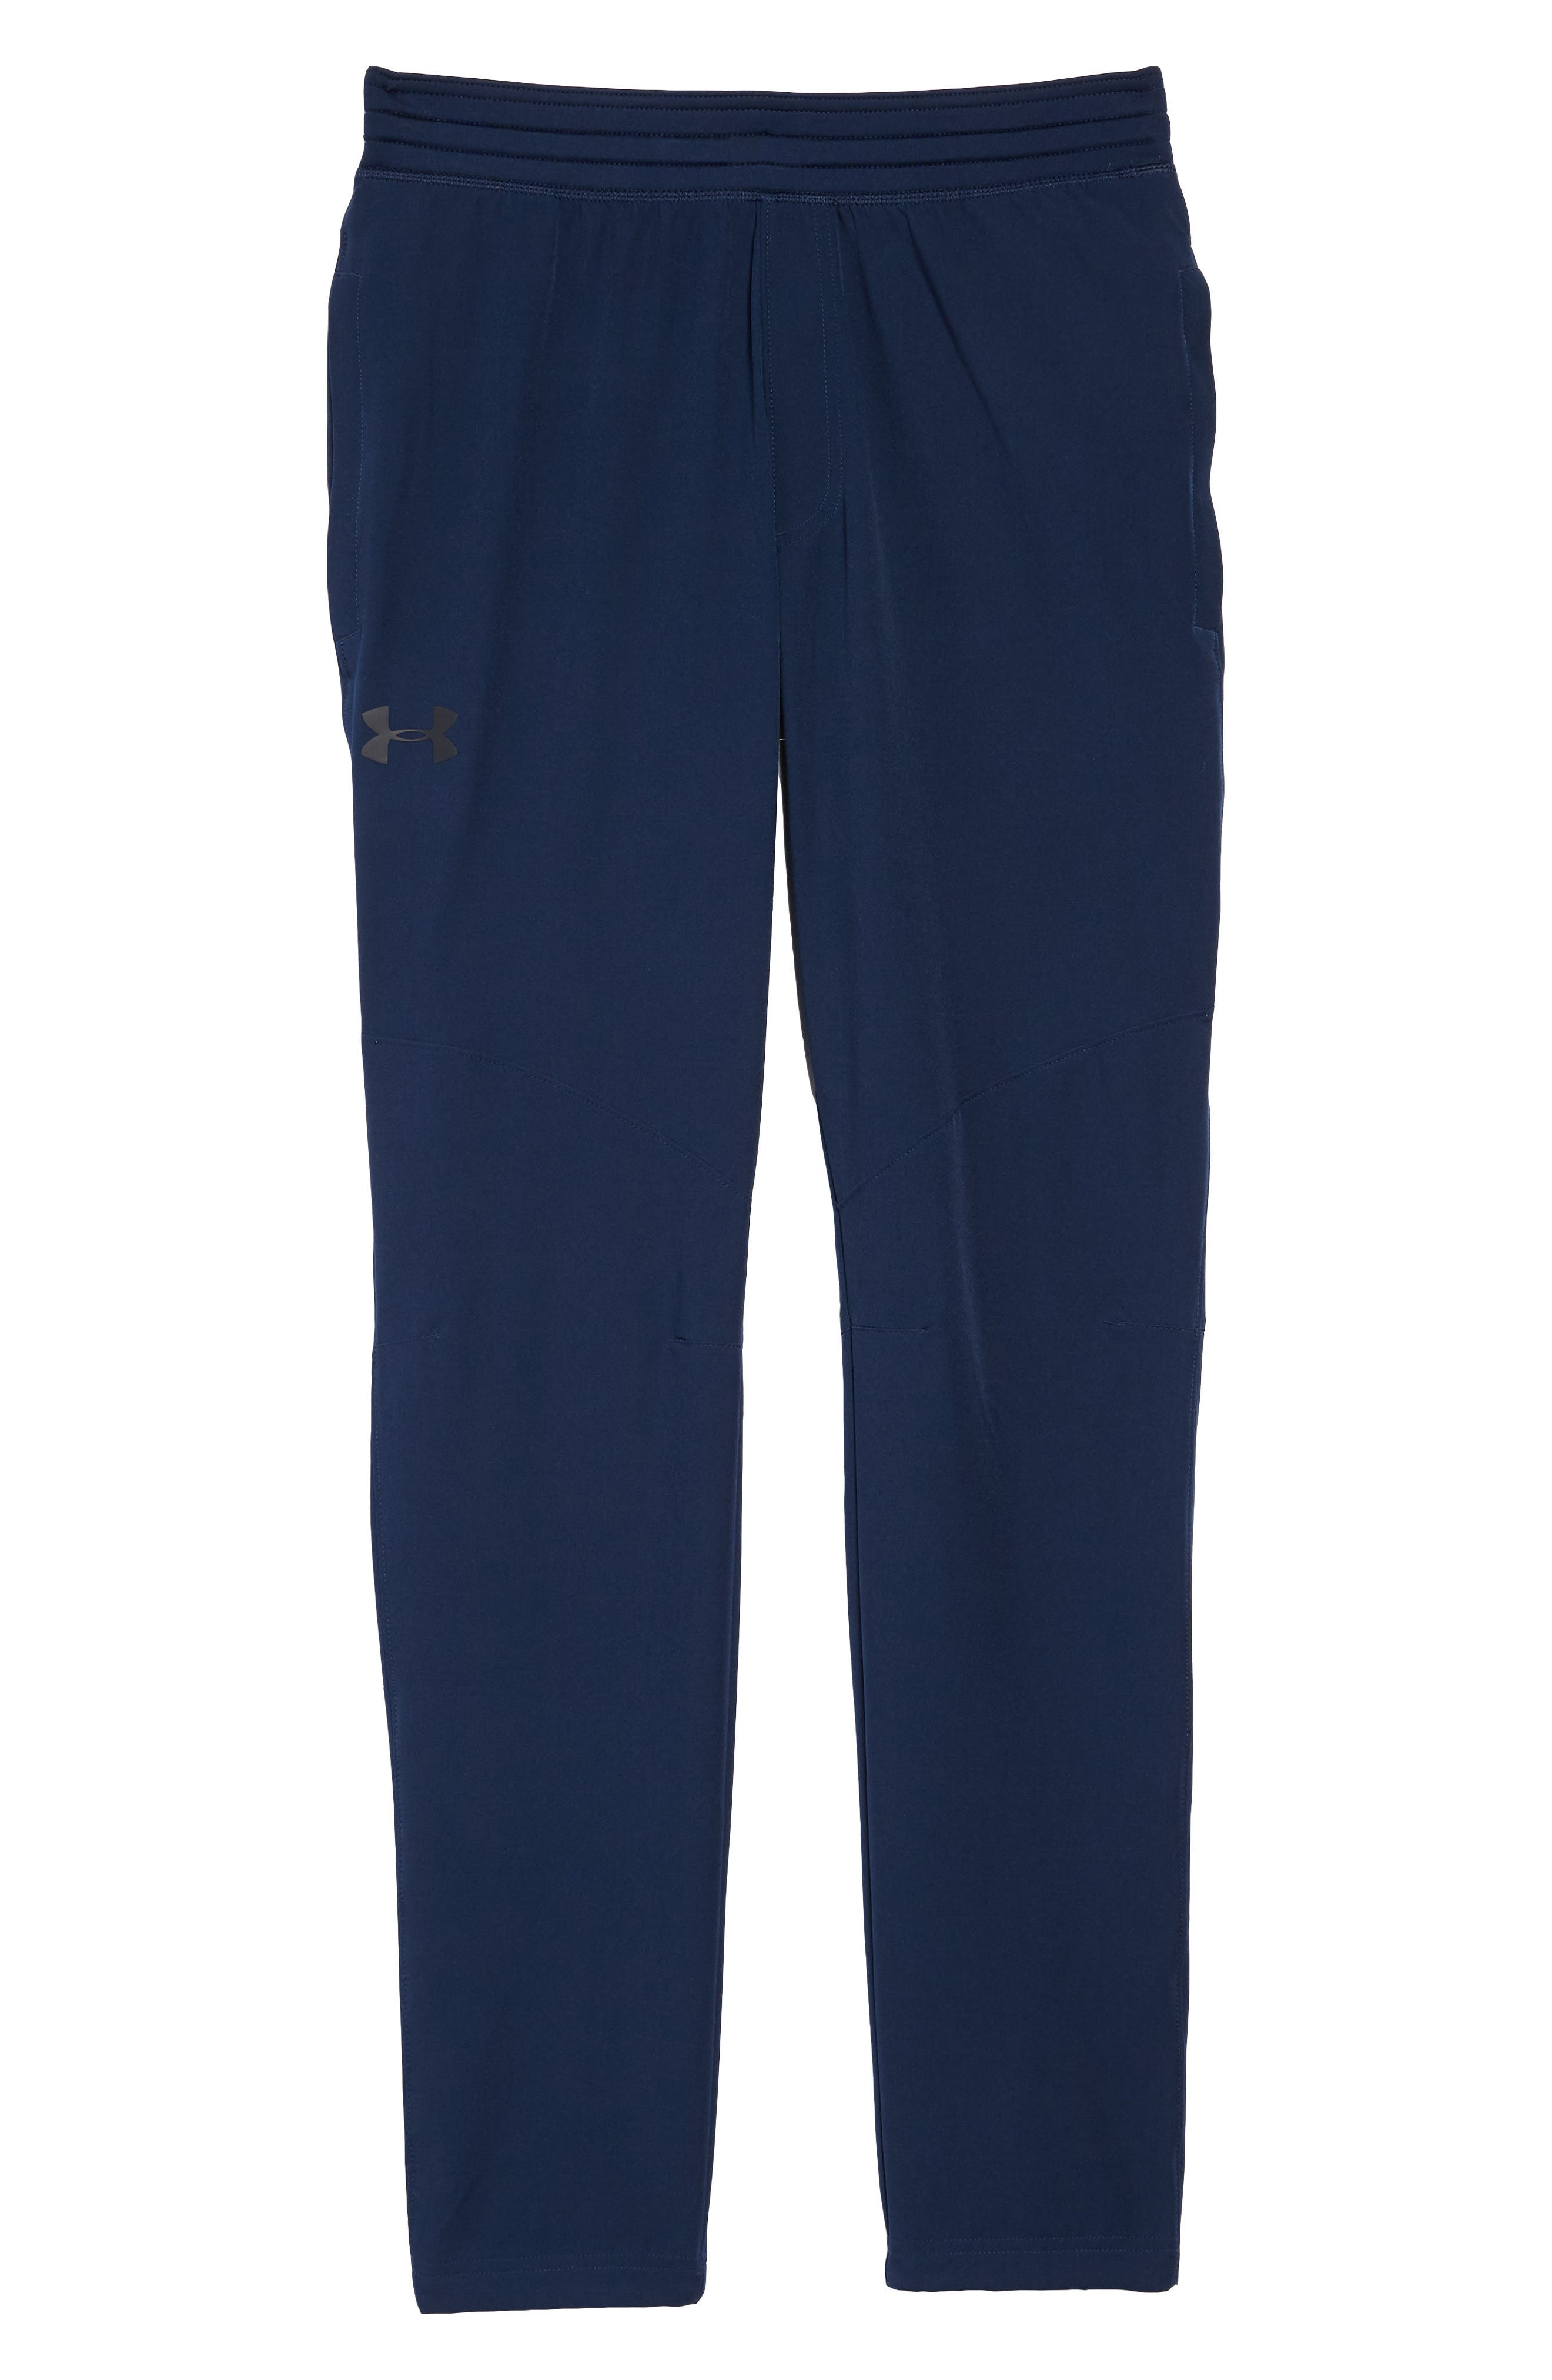 Alternate Image 2  - Under Armour Fitted Woven Training Pants